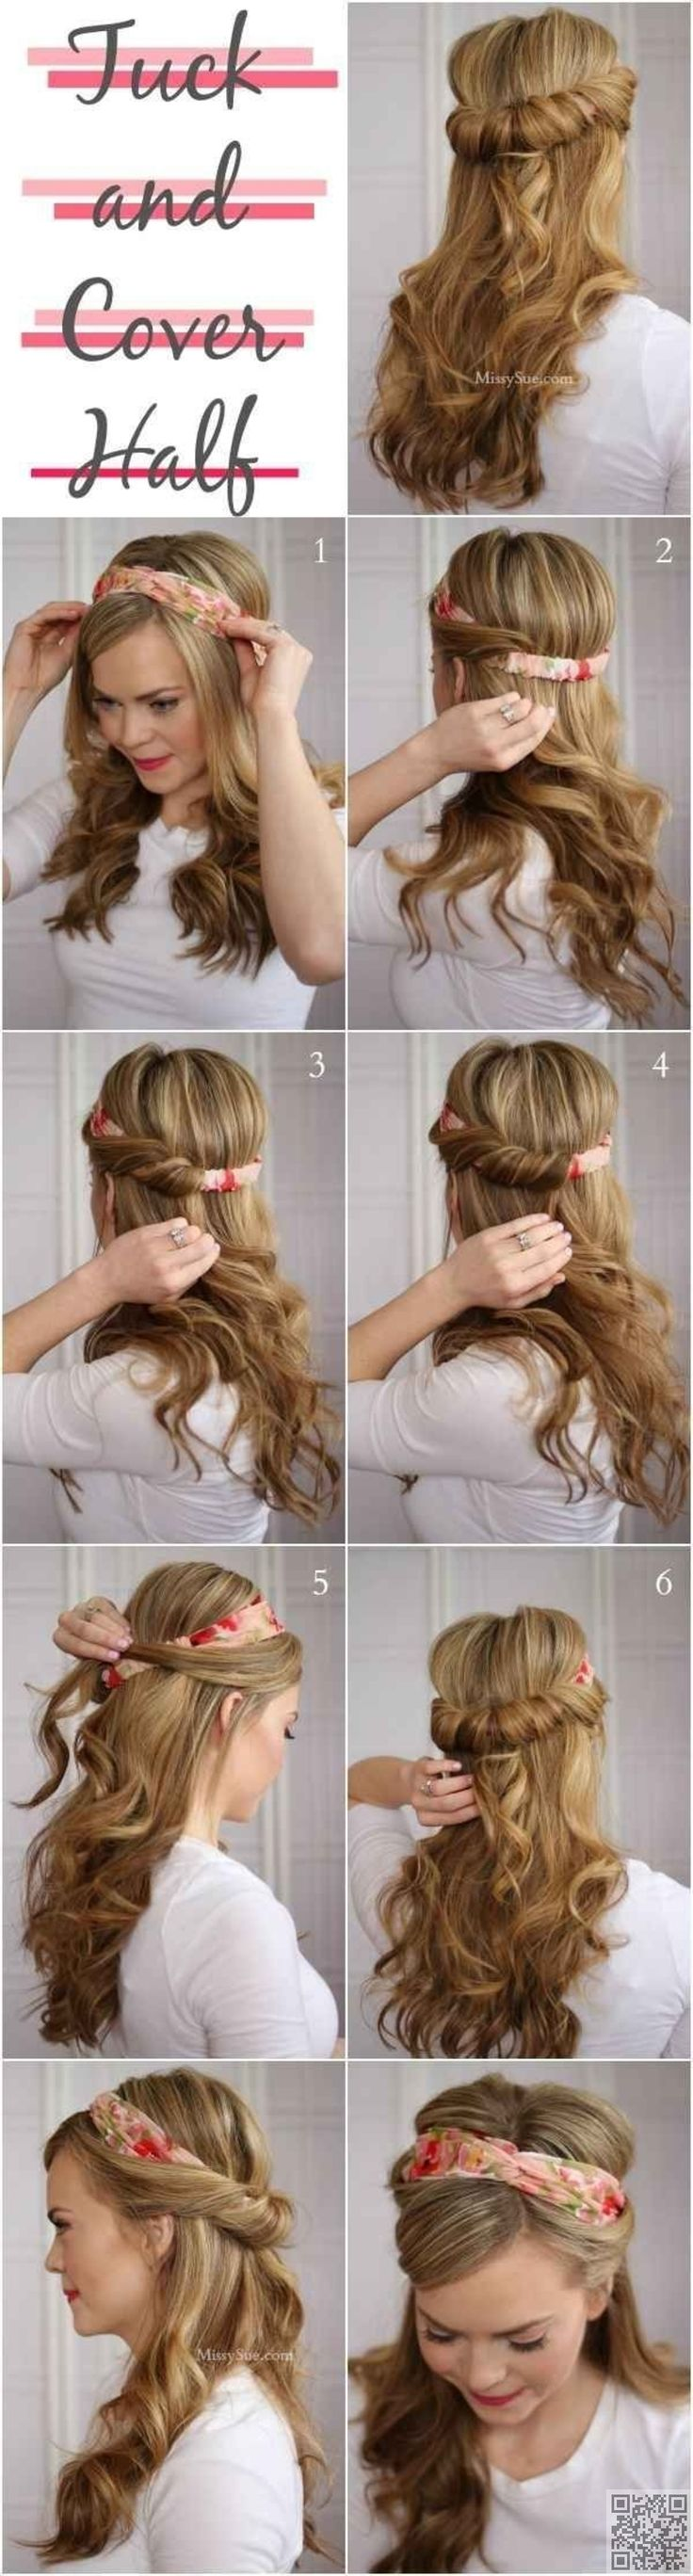 5 Tuck and Cover 16 Gorgeous Hair Styles for Lazy Girls like